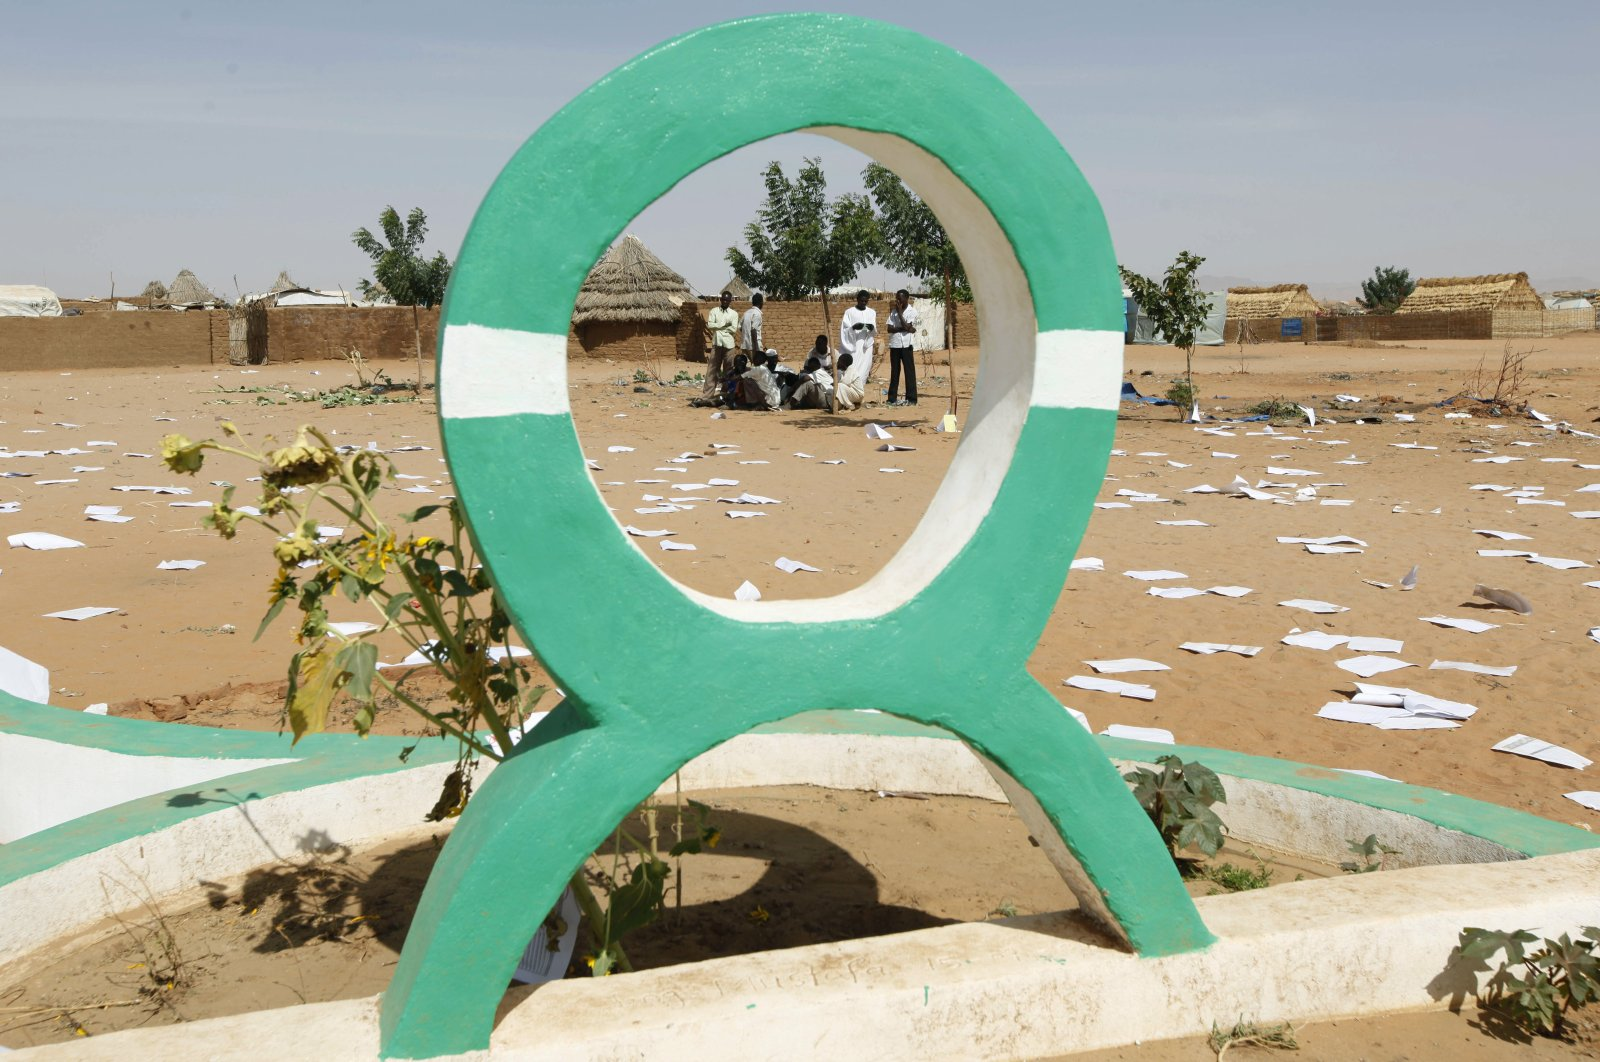 Sudanese refugees gather behind the Oxfam logo at al-Salam refugee camp, outside the Darfur town of al-Fasher, March 21, 2009. (AP Photo)